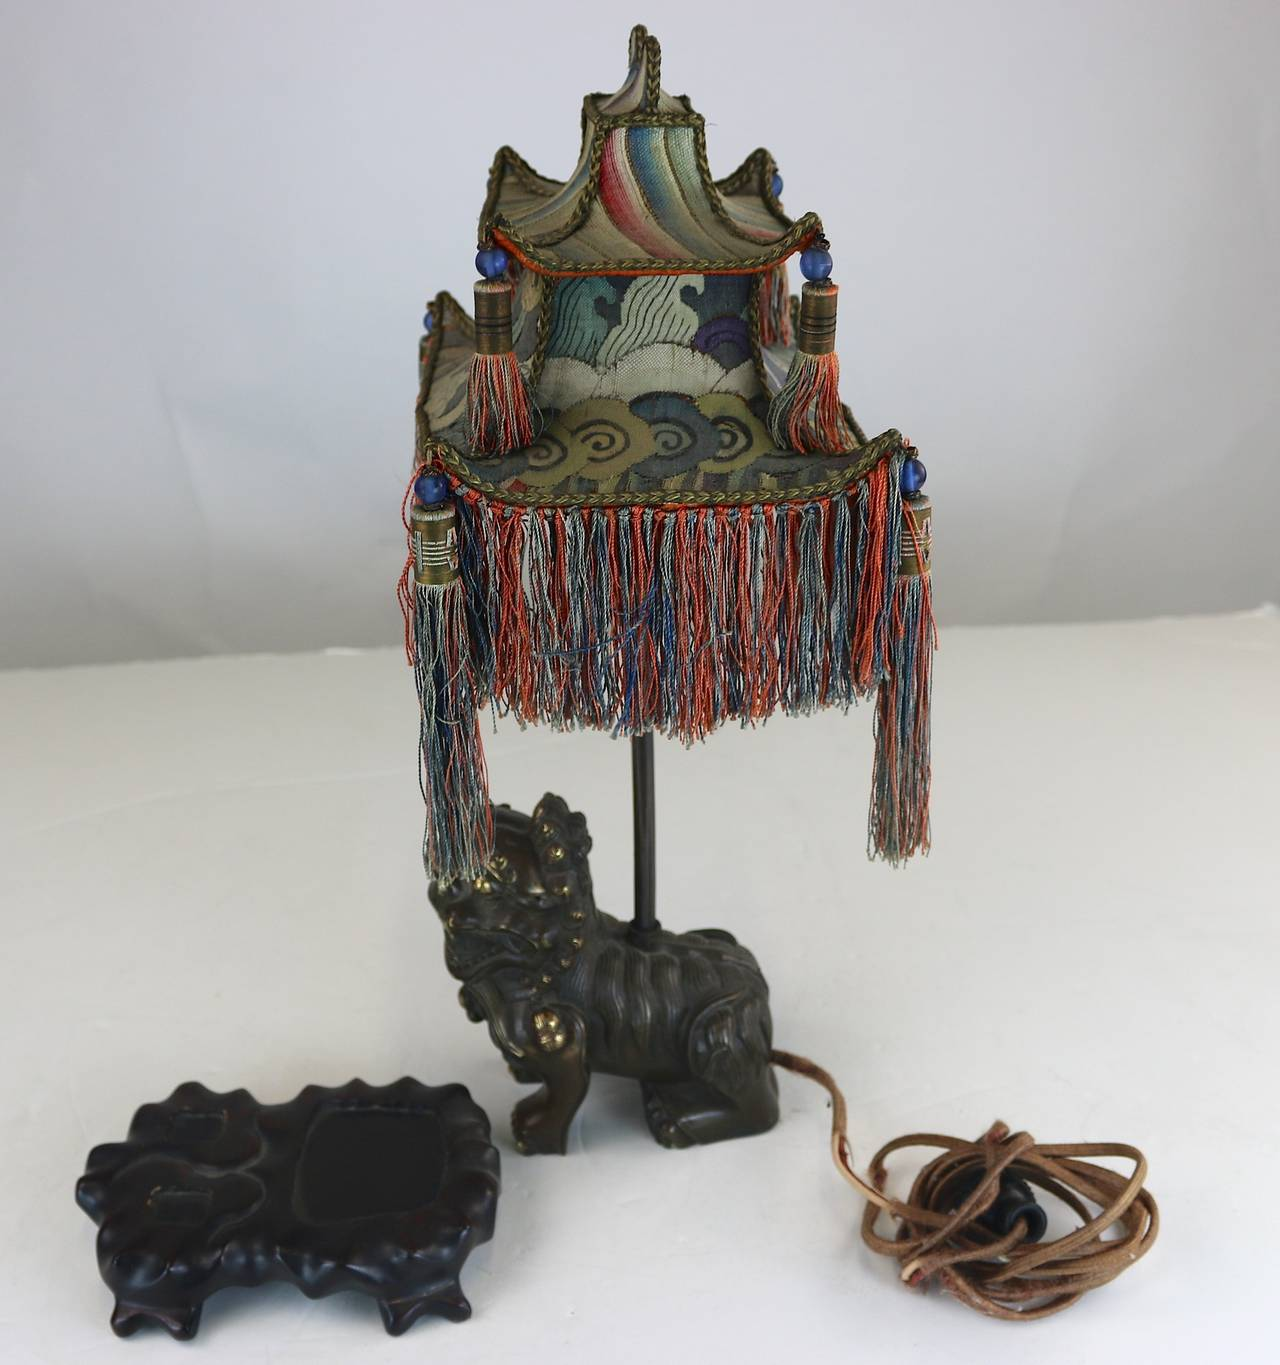 Rare Exotic 1920s Chinoiserie Lamp of Tasseled Pagoda Shade with Foo Dog Base For Sale 4